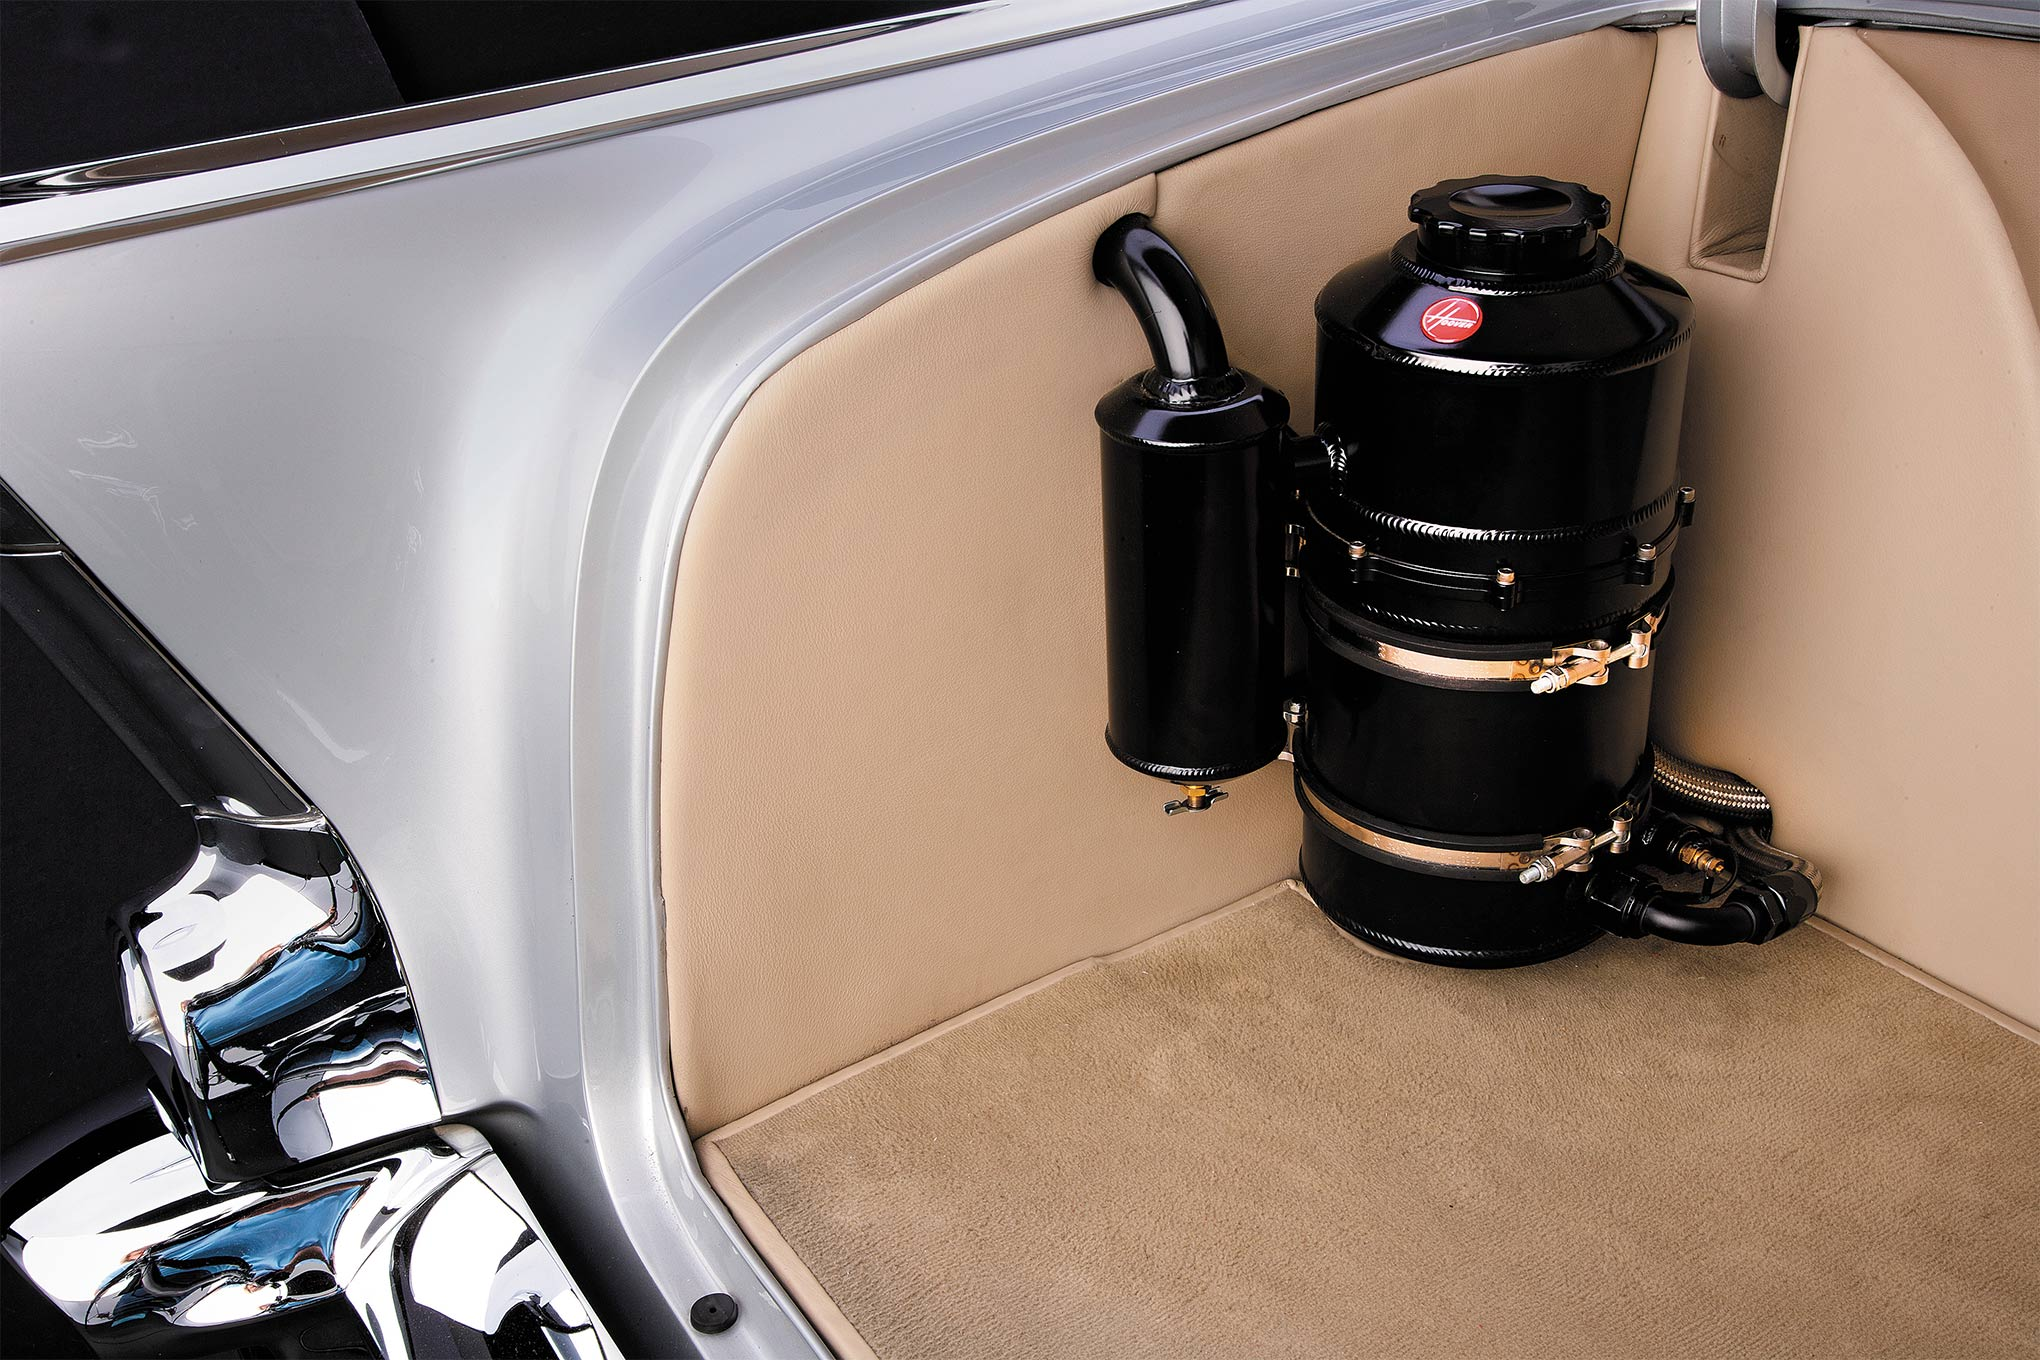 Tim worked with Moroso to develop a streetable dry sump oil system that's neatly packaged in the trunk (Peterson tank) that's filled with Red Line 10W40 motor oil.